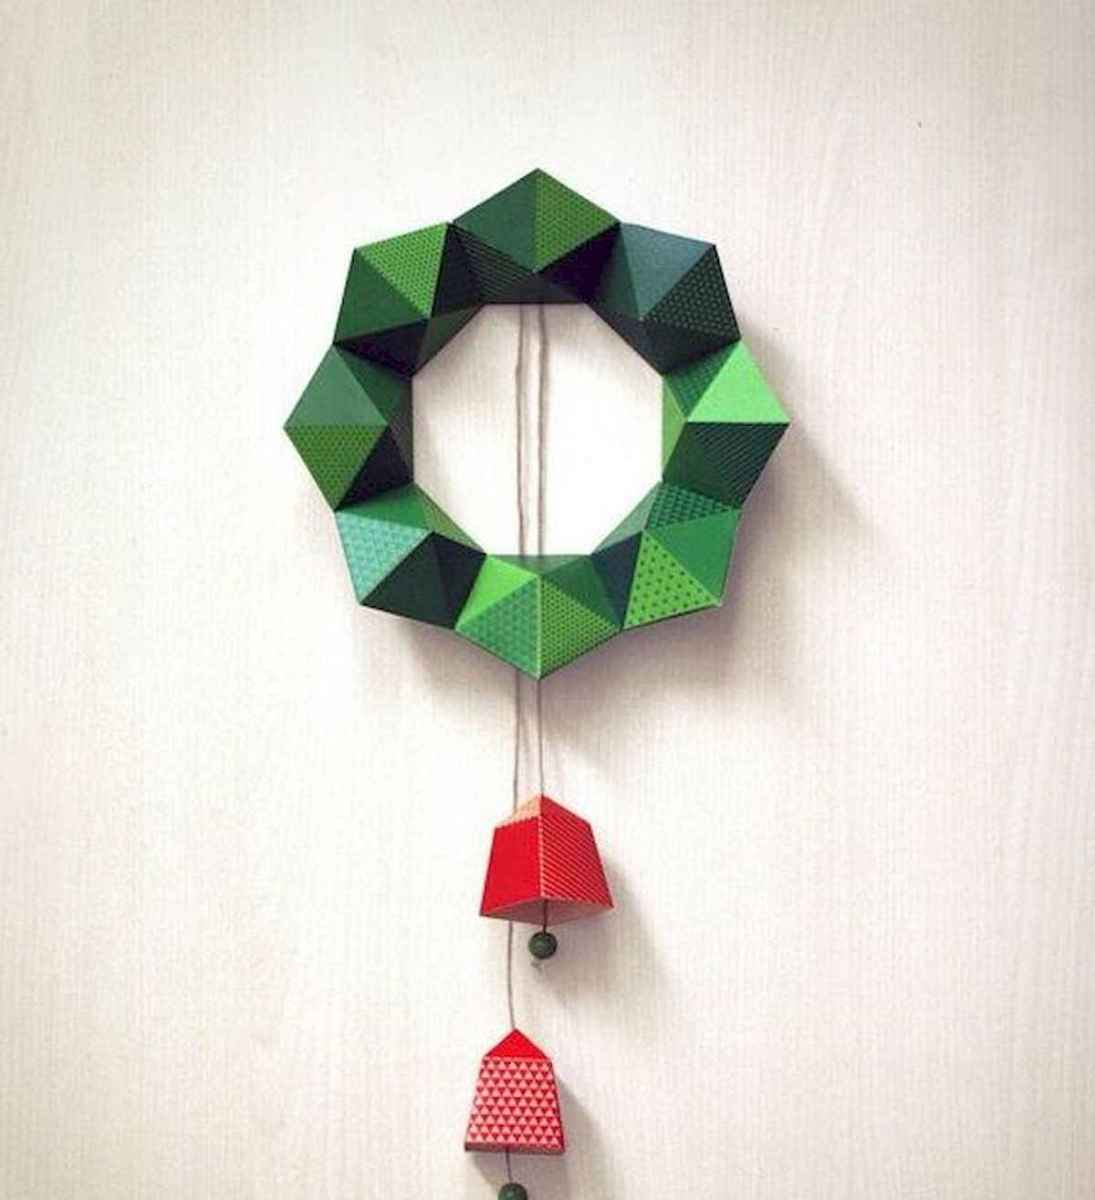 50 Easy Craft Ideas For Kids (24)